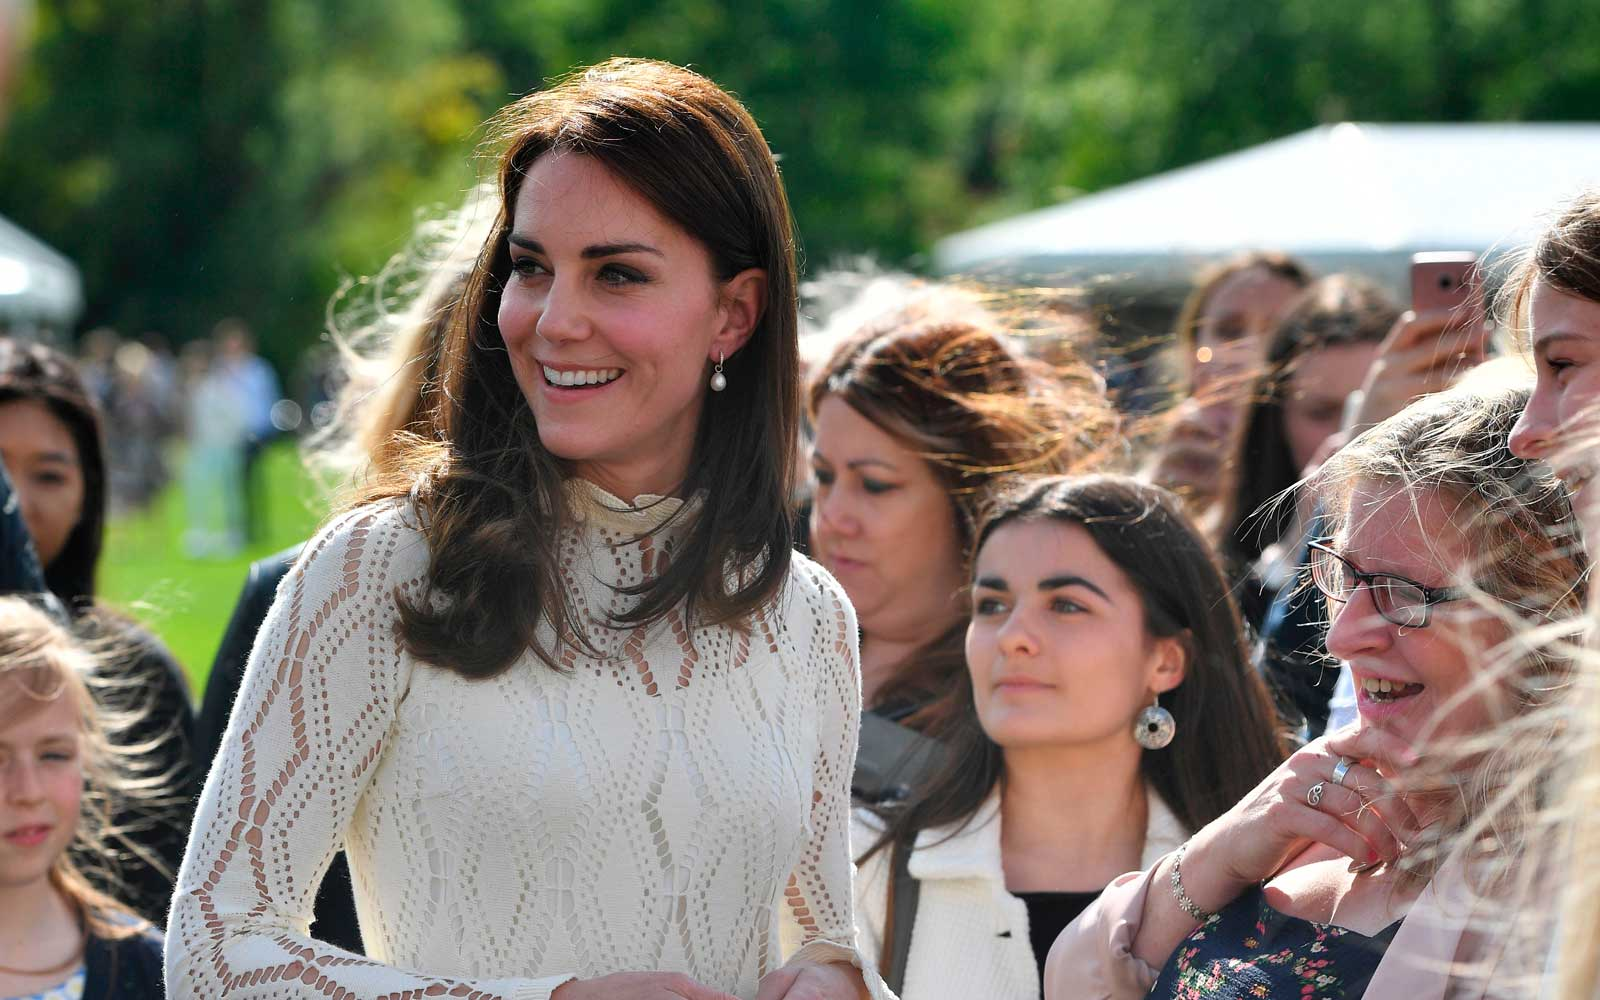 Kate Middleton wore these $23 wedges for a party at Buckingham Palace